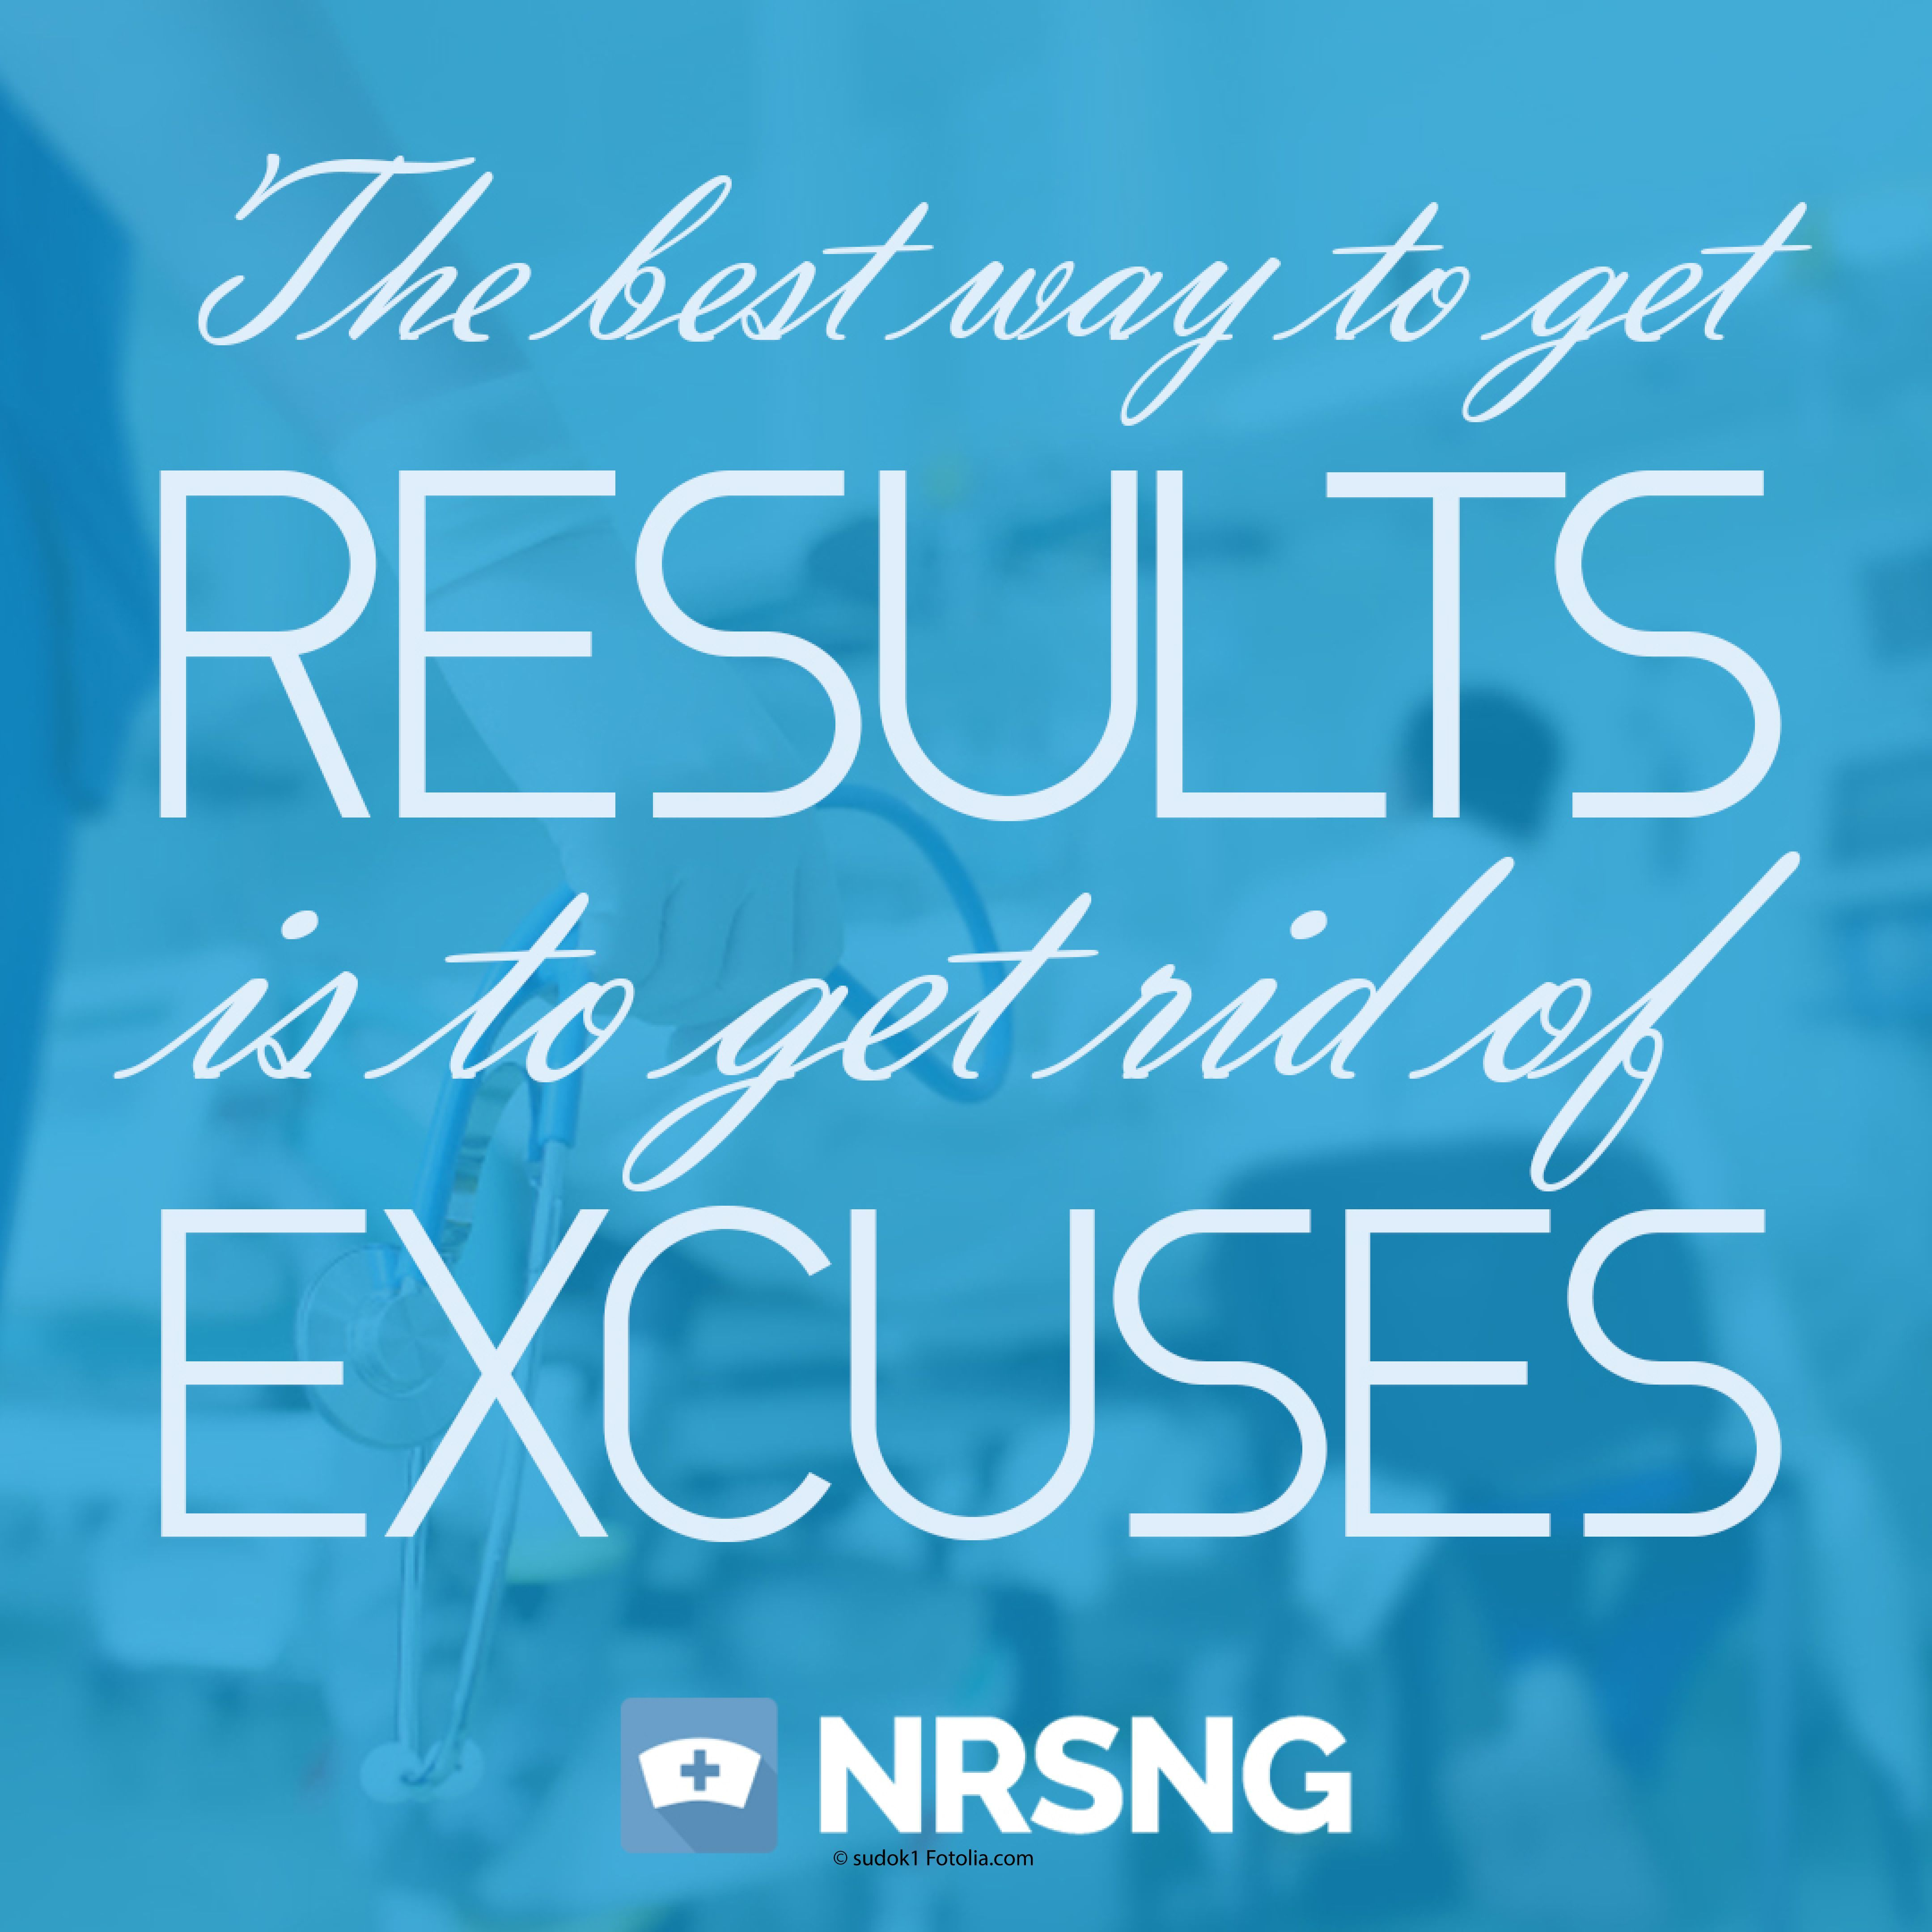 94 Nursing Quotes To Inspire Motivate And Uplift Any Nurse And